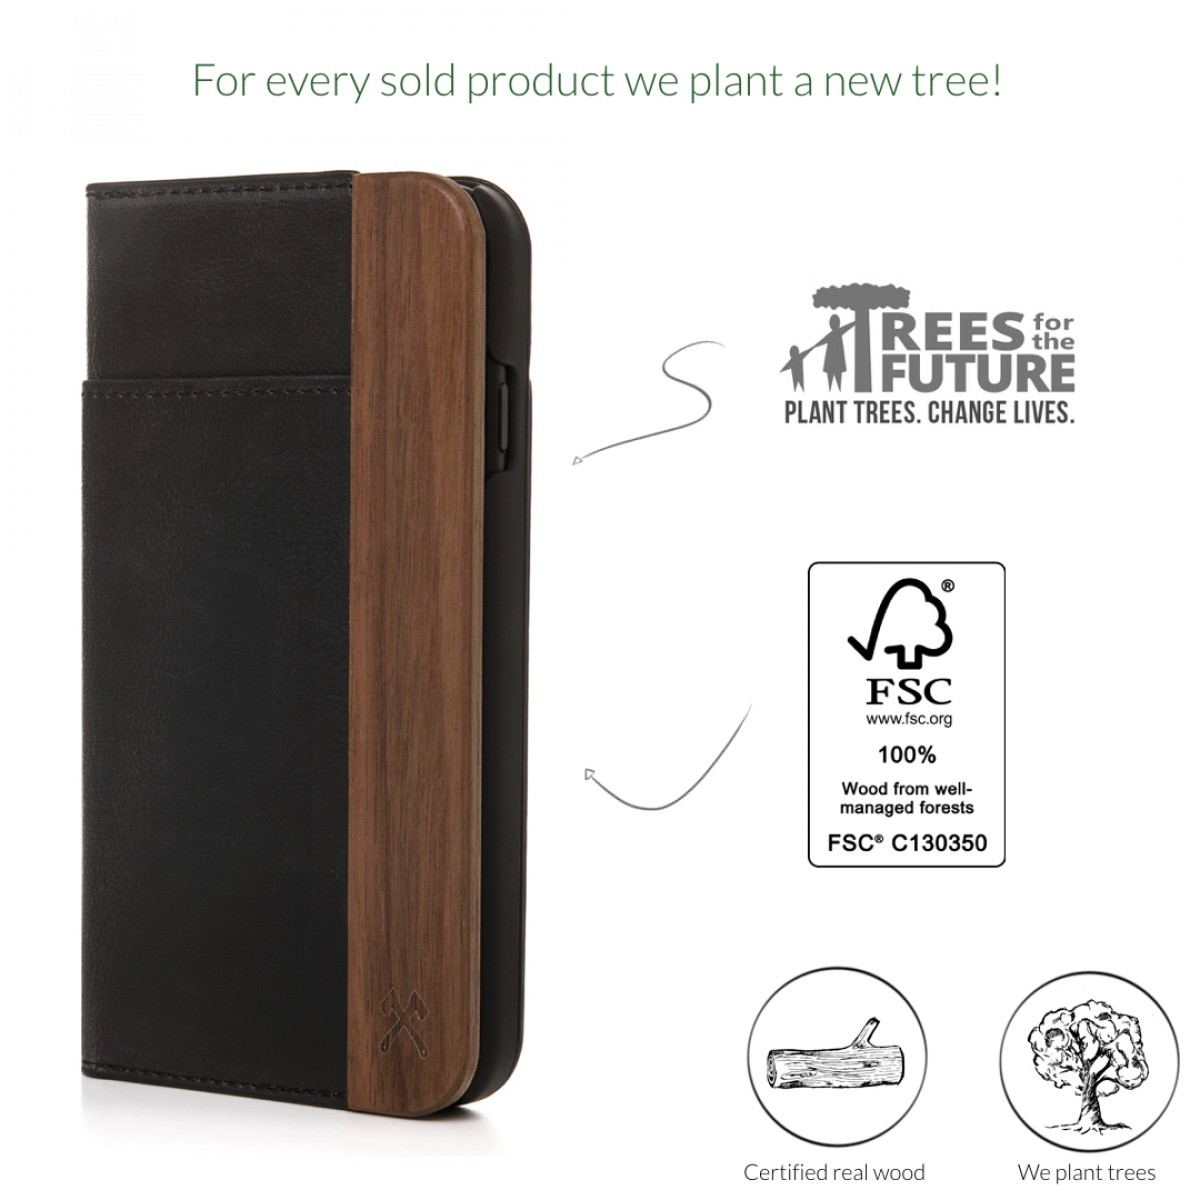 Woodcessories - EcoWallet - Premium Design Hülle, Case, Cover für das iPhone aus FSC zert. Walnuss Holz & veganem Leder (iPhone 7 Plus/ 8 Plus)